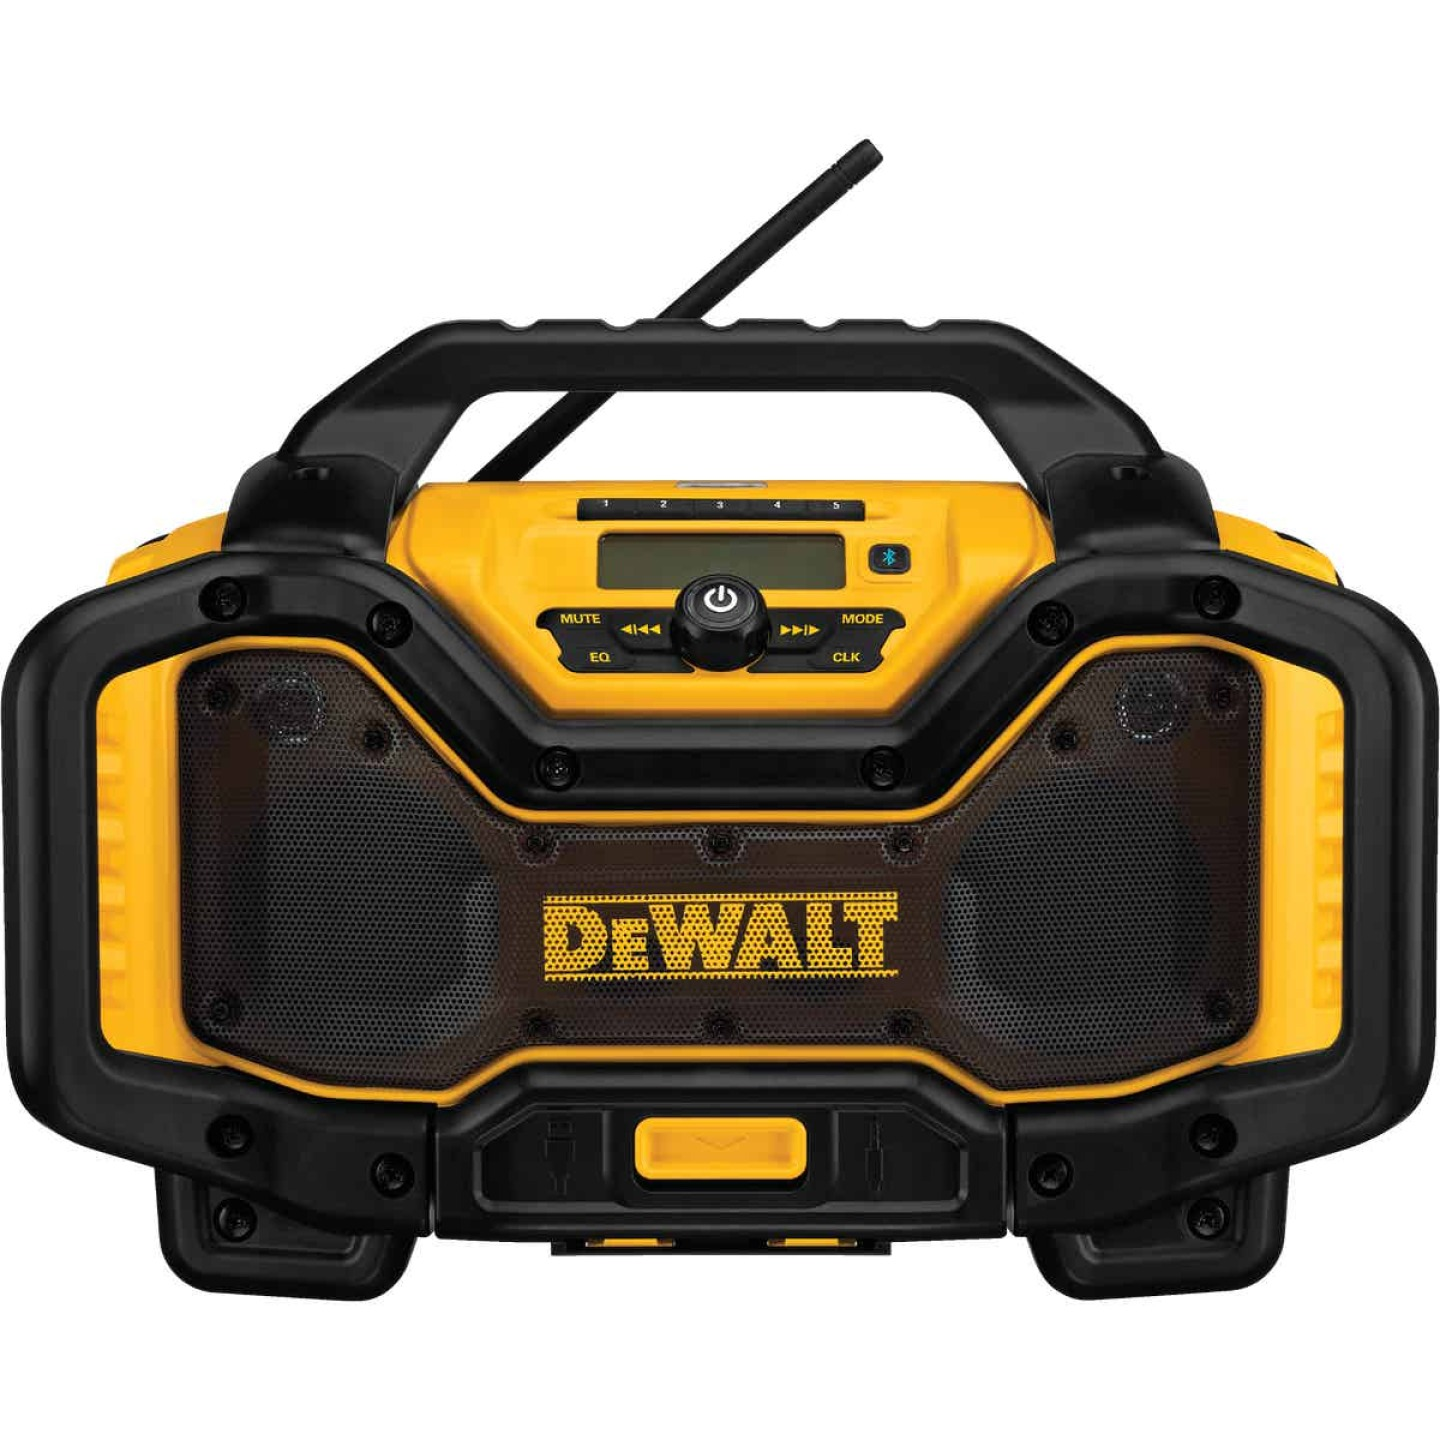 DeWalt 20 Volt Lithium-Ion Bluetooth Cordless Jobsite Radio/Charger (Bare Tool) Image 1